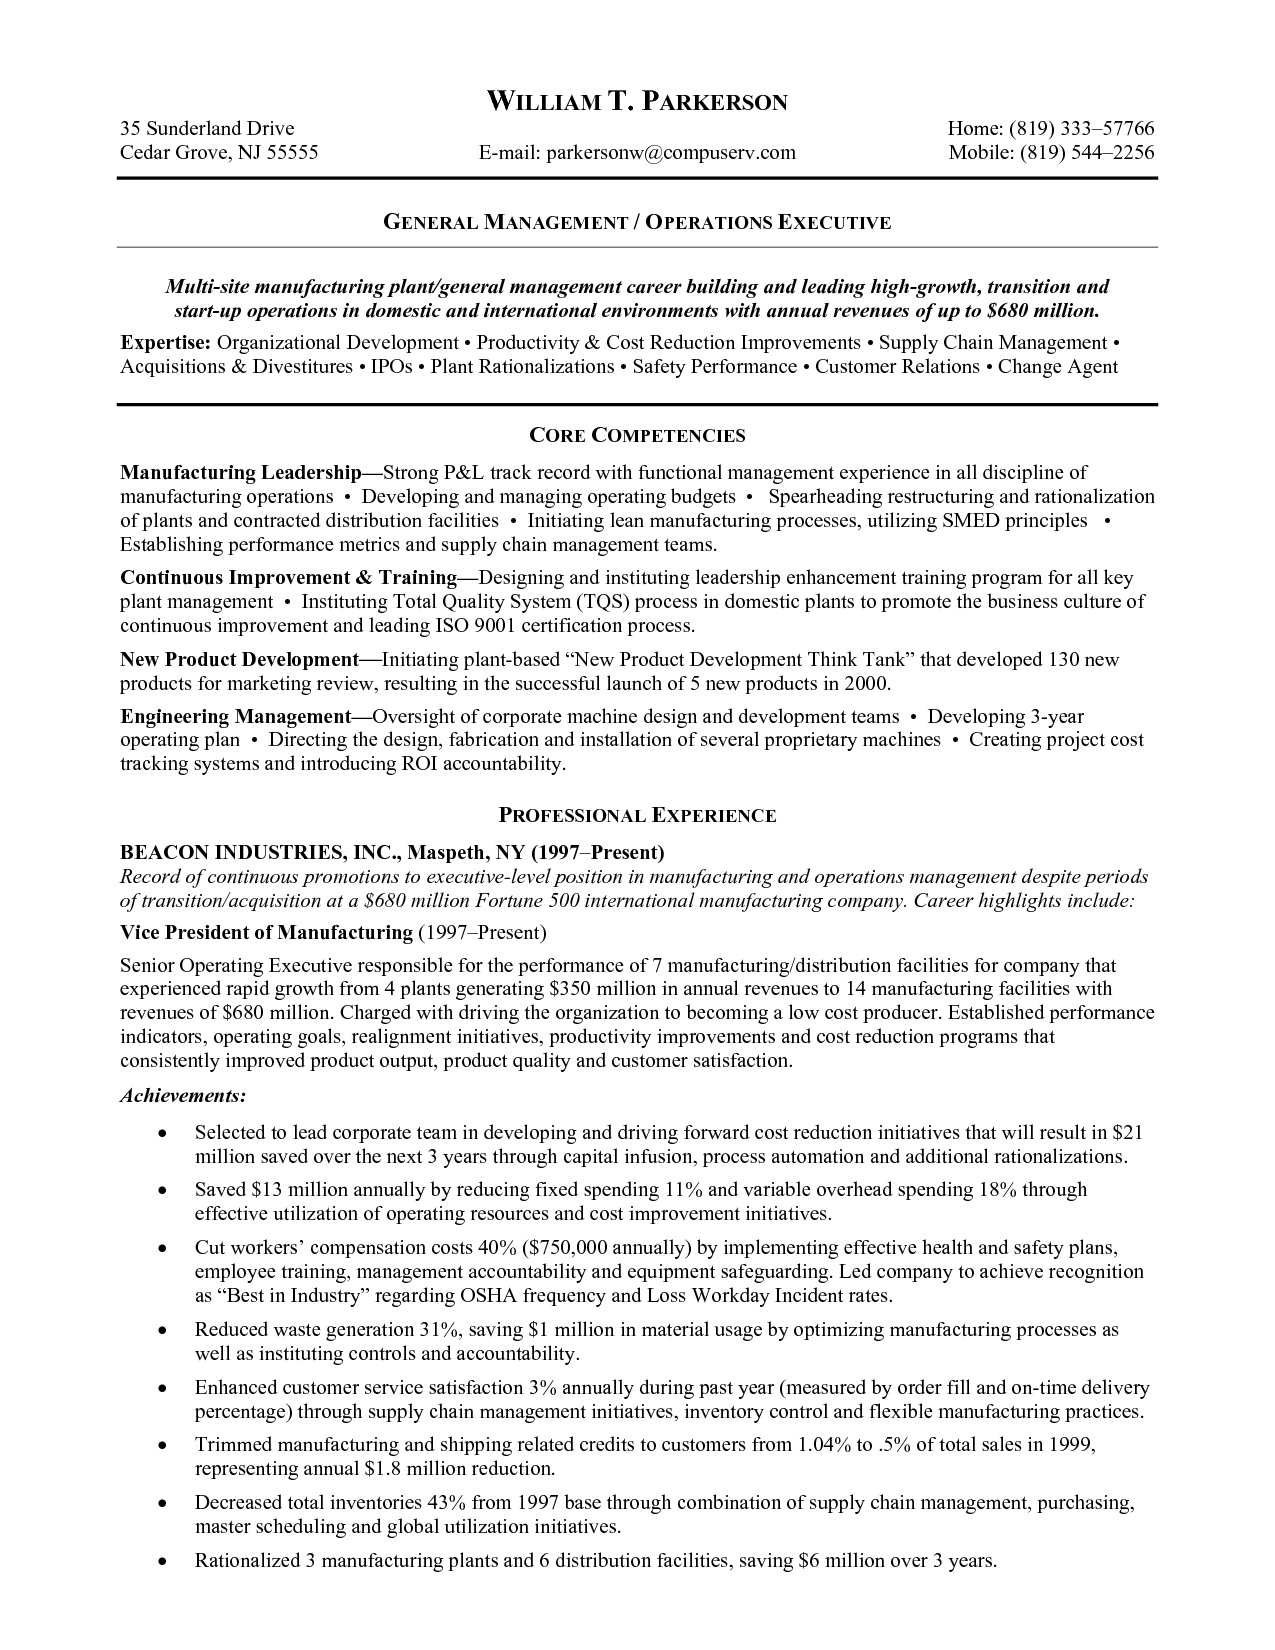 General Manufacturing Resume Samples Objective Examples Free Edit